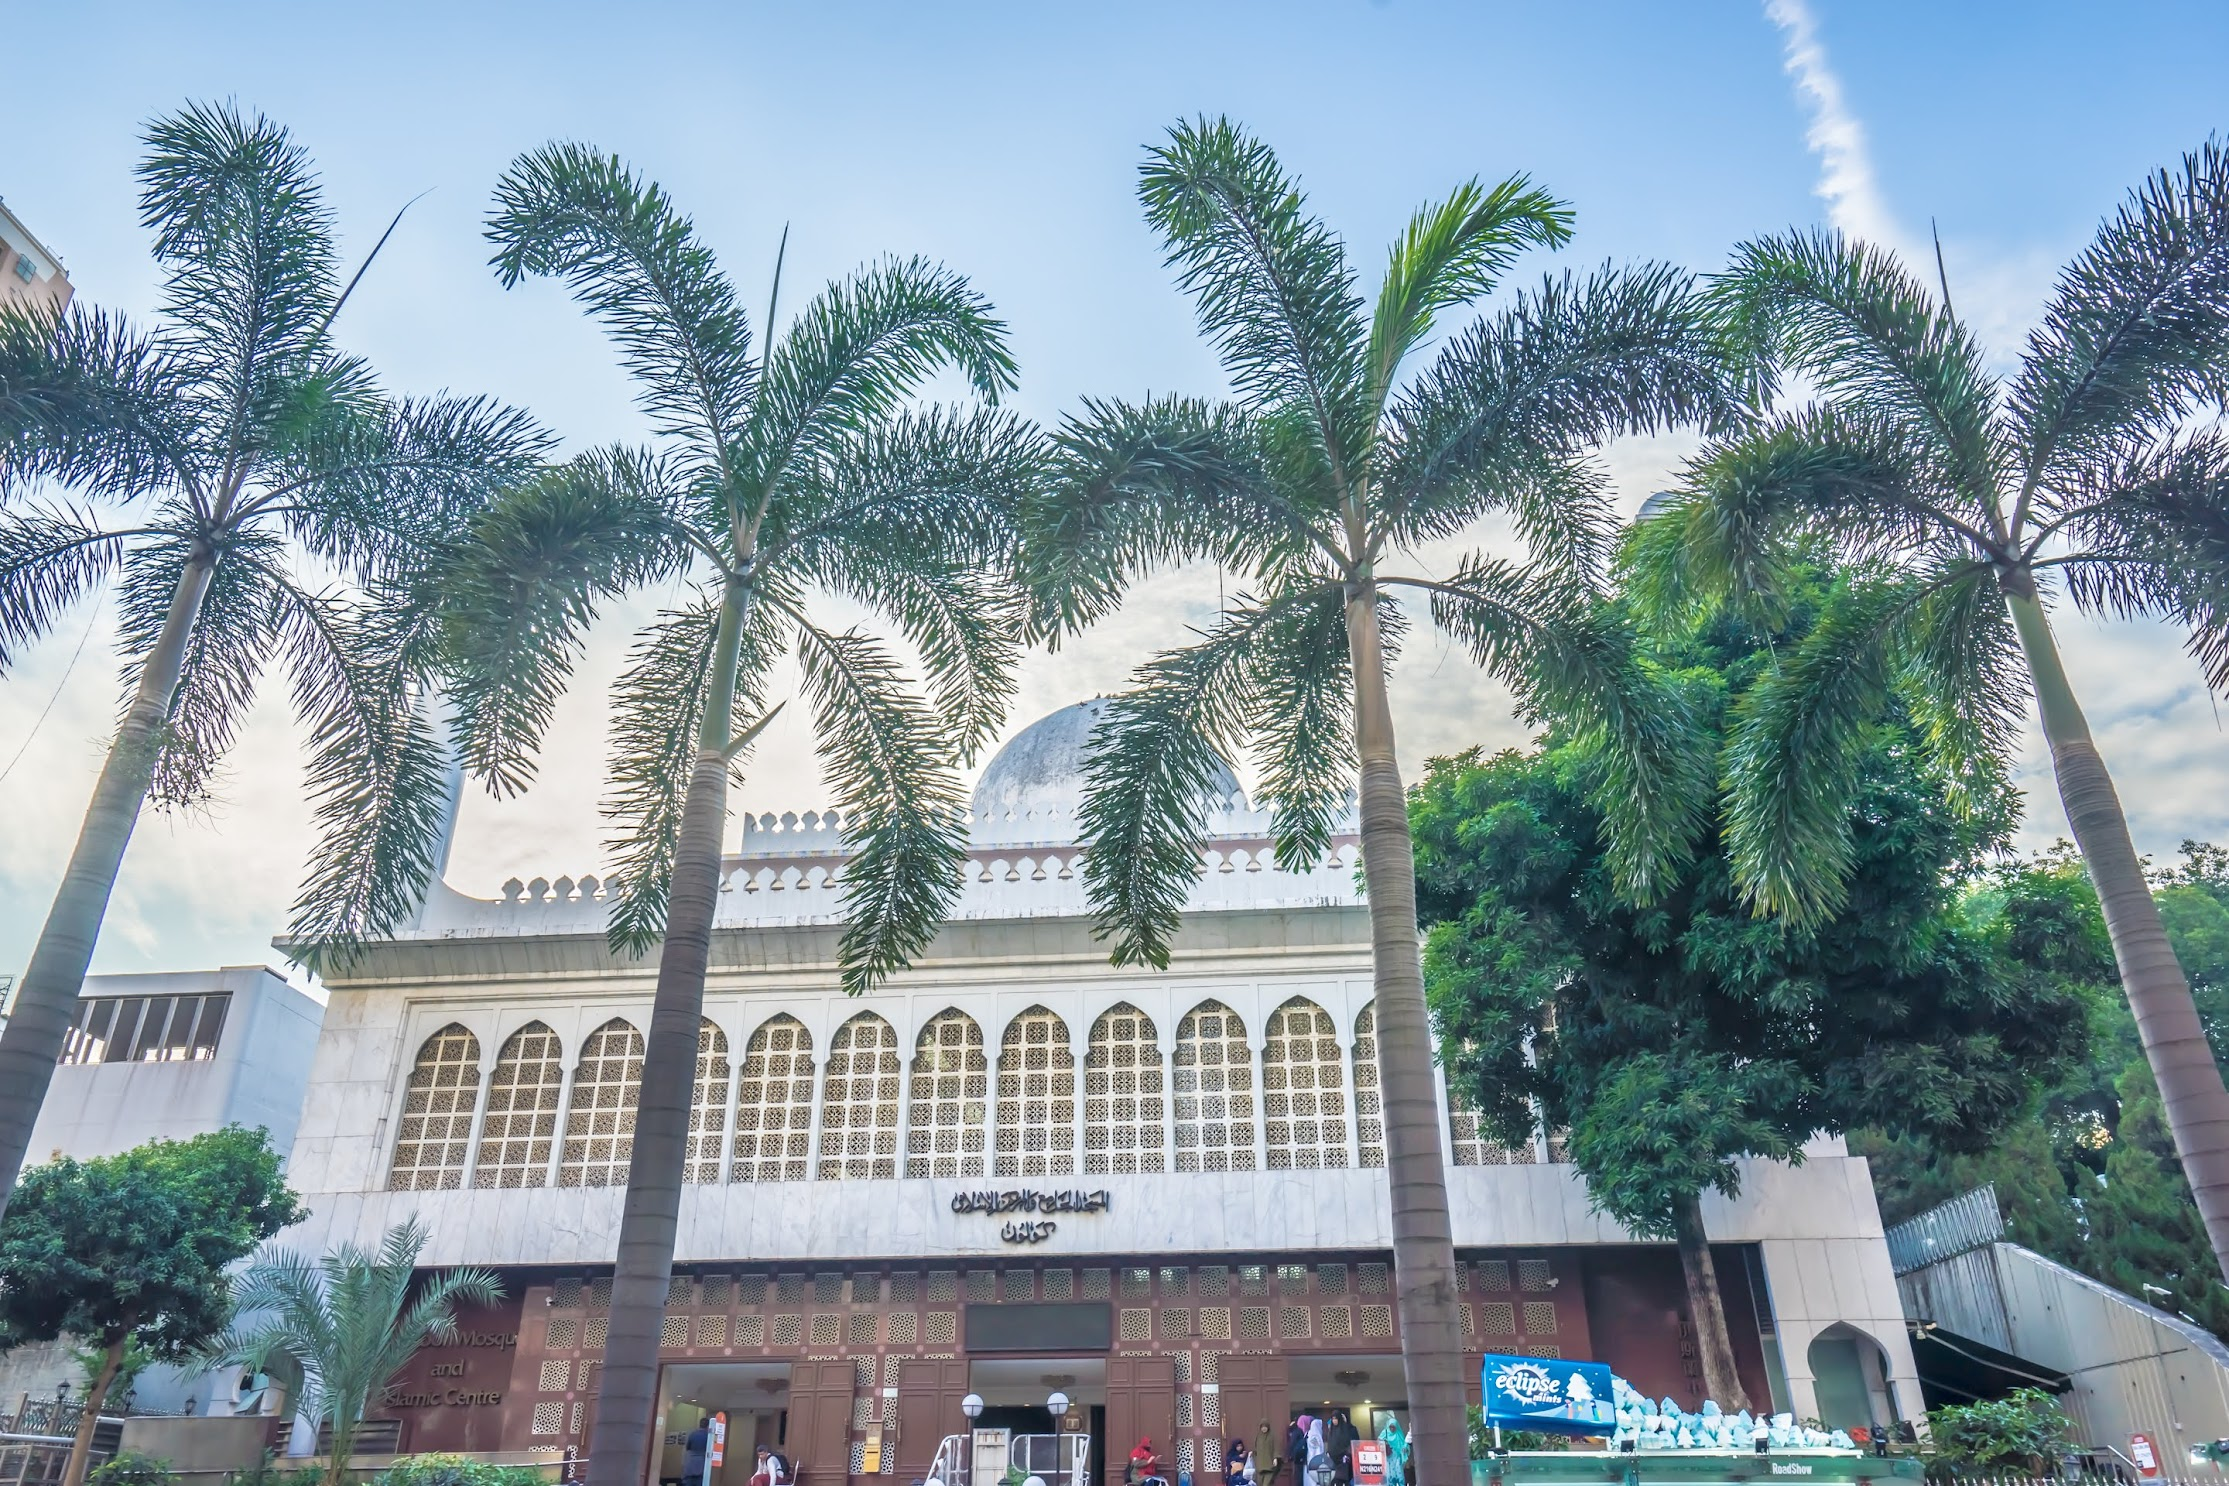 Hong Kong Kowloon Mosque2